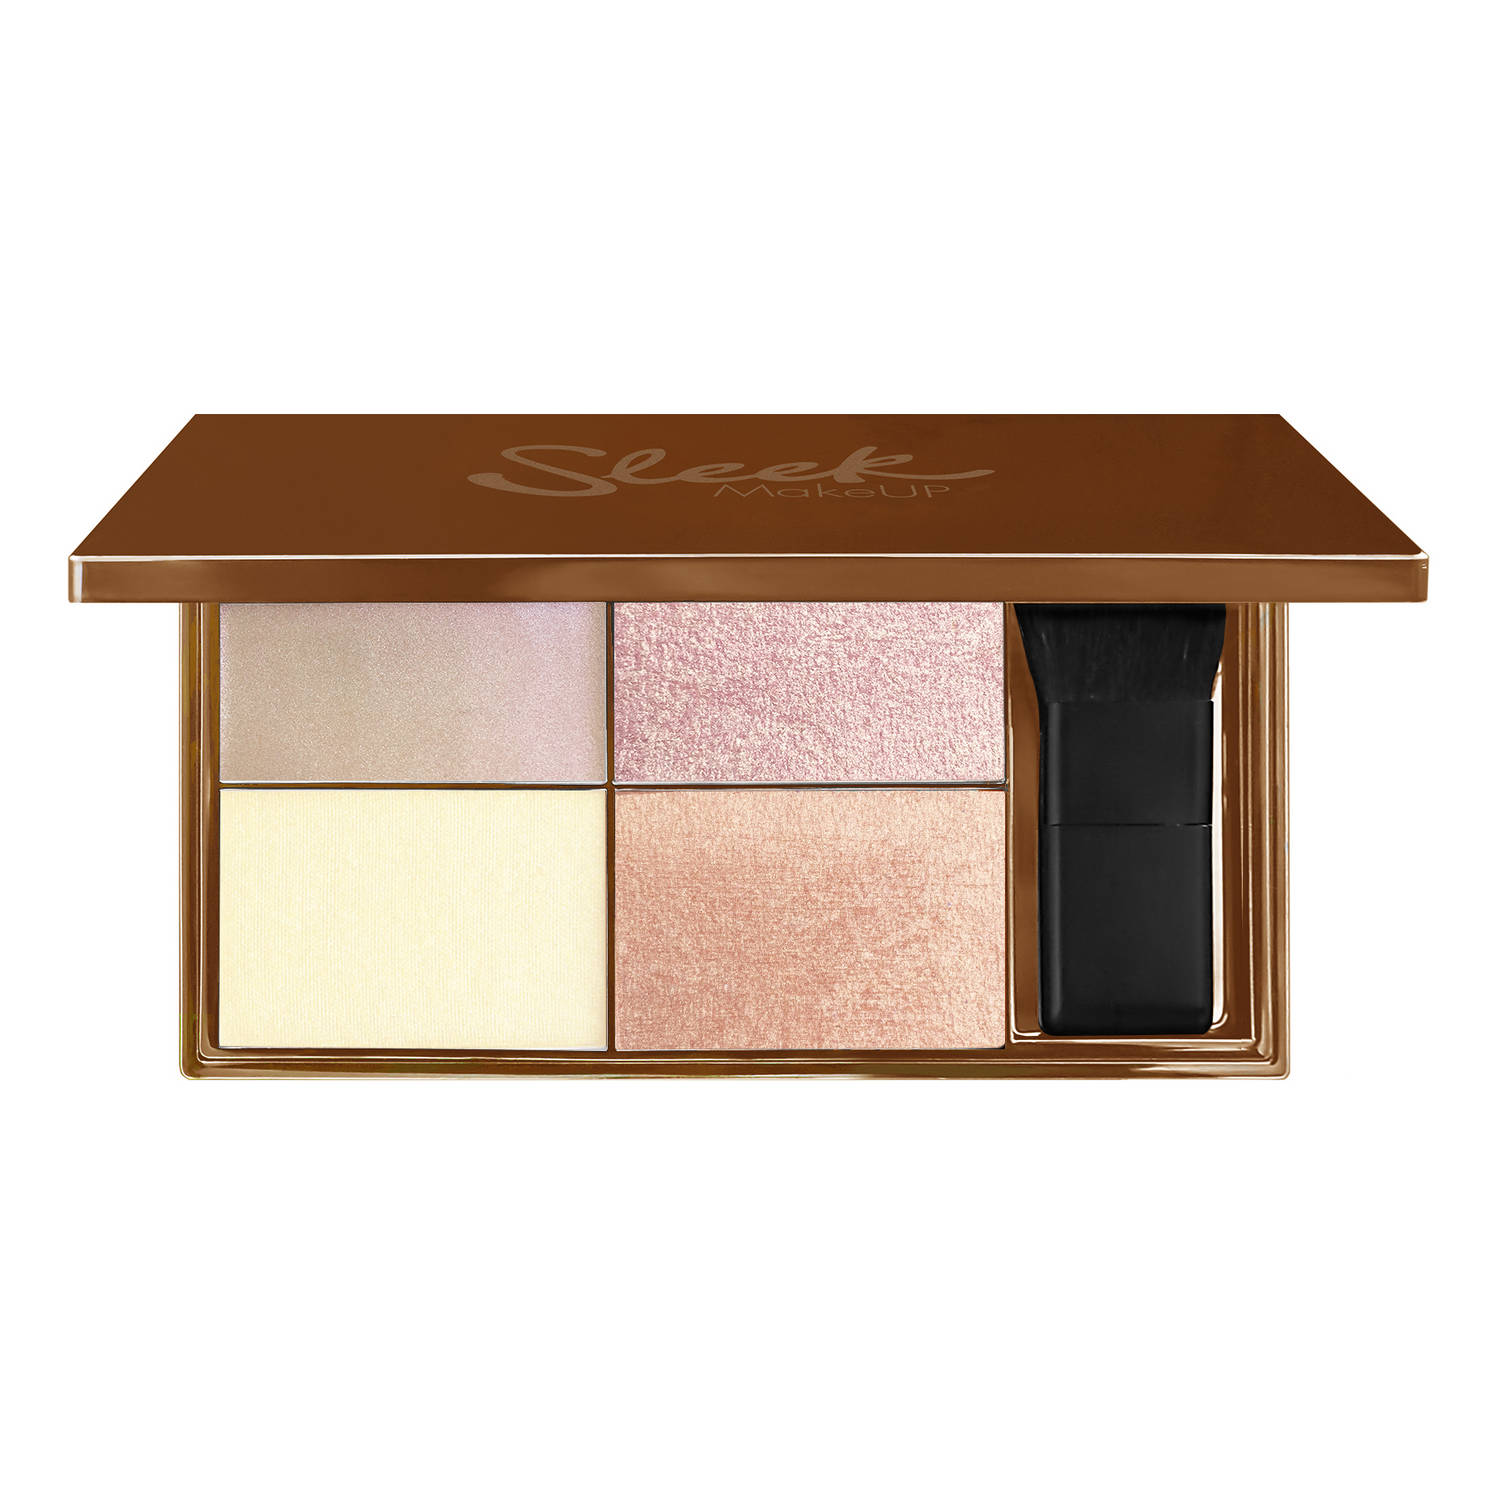 Sleek Makeup – följ de senaste sminktrenderna med Sleek Contour Kit och Sleek highlighter